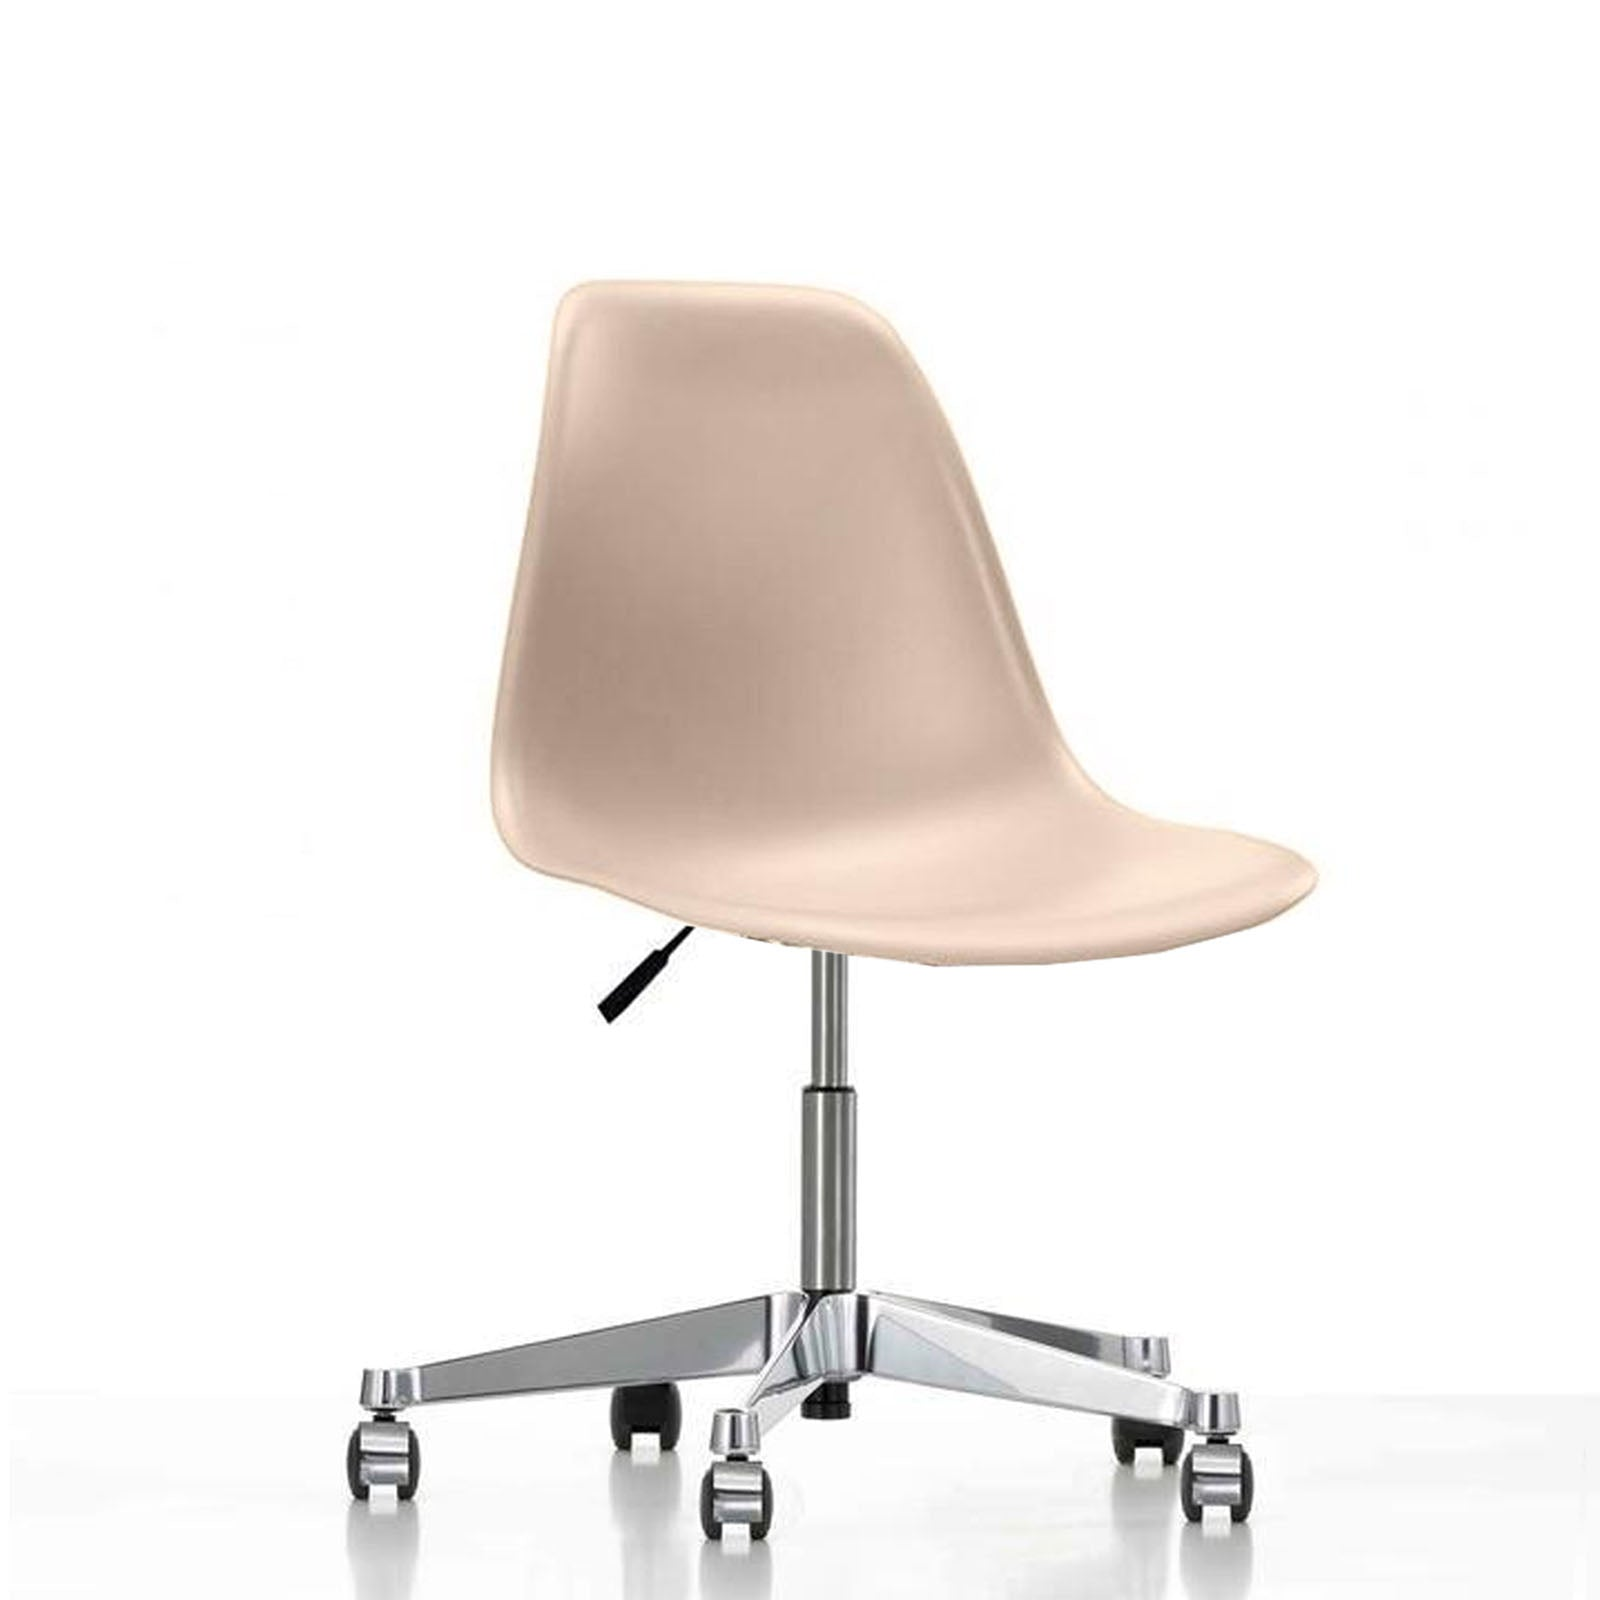 CLASSIC PLASTIC & ALUMINUM OFFICE CHAIR BP8007FW-PB1+Y